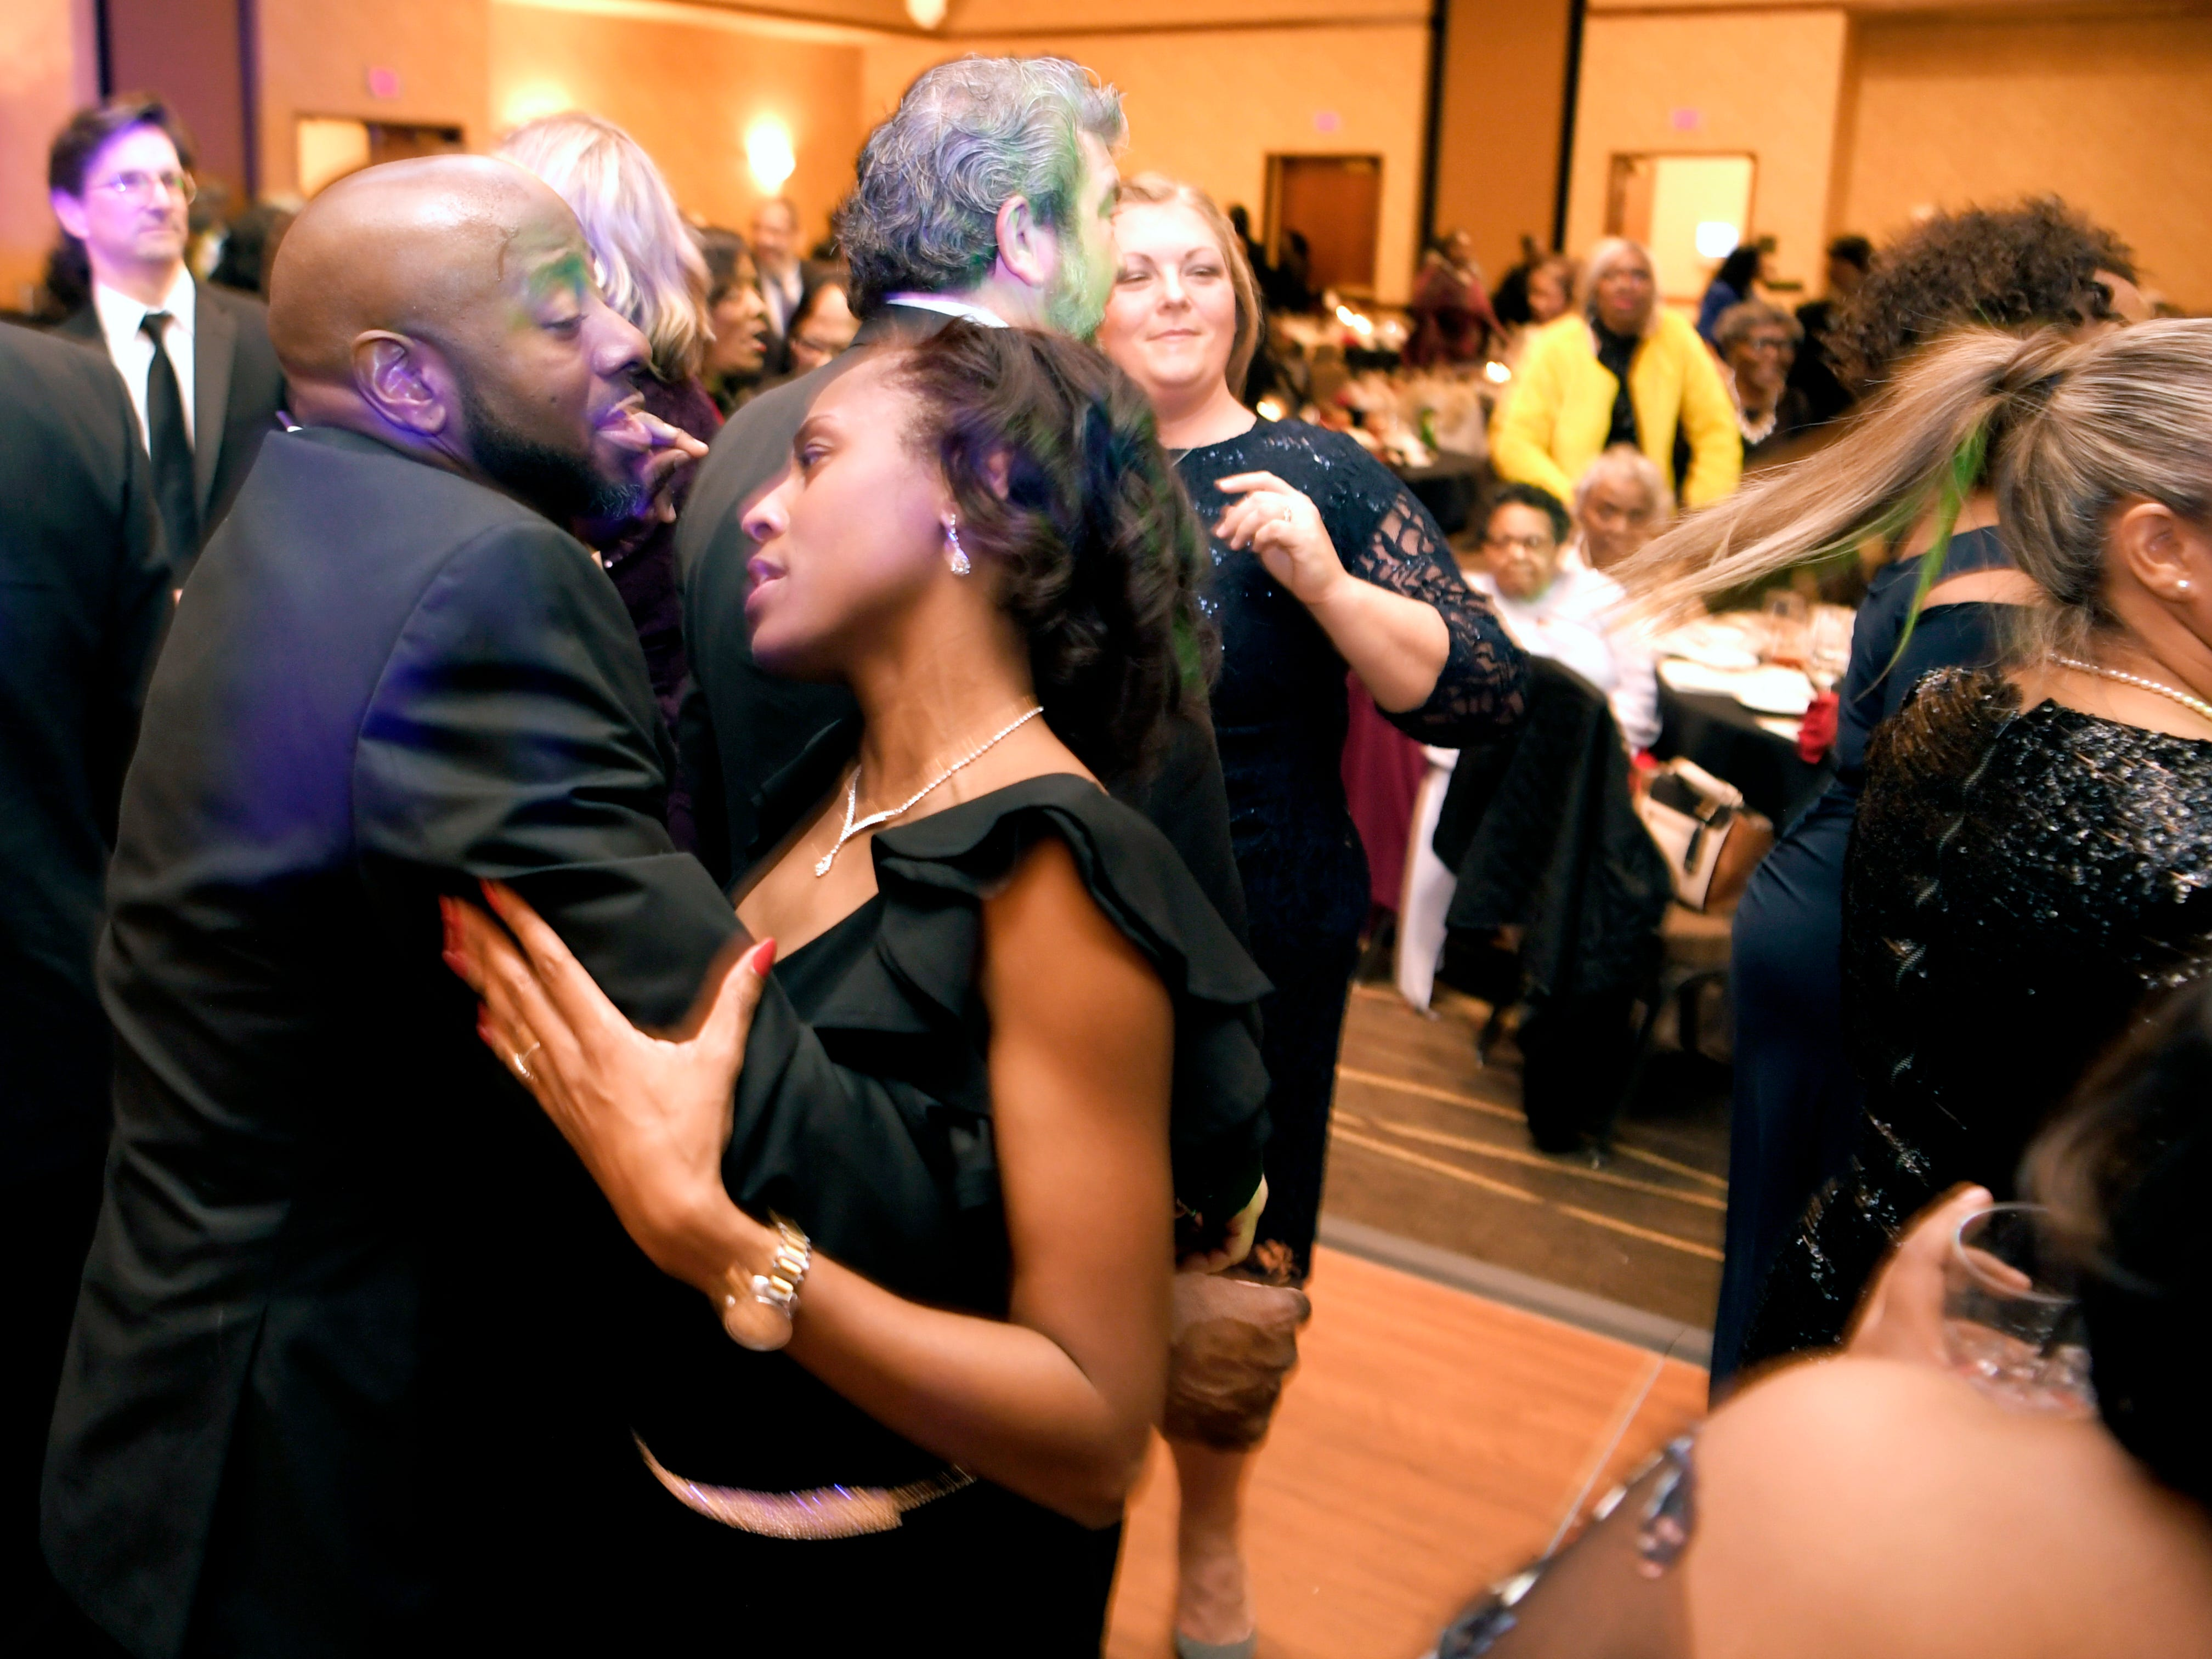 Anthony and Angela Fleming dance at the African American Heritage Societys 18th Annual Black Tie Affair at the Embassy Suites in Franklin on Sat., Feb. 2, 2019.